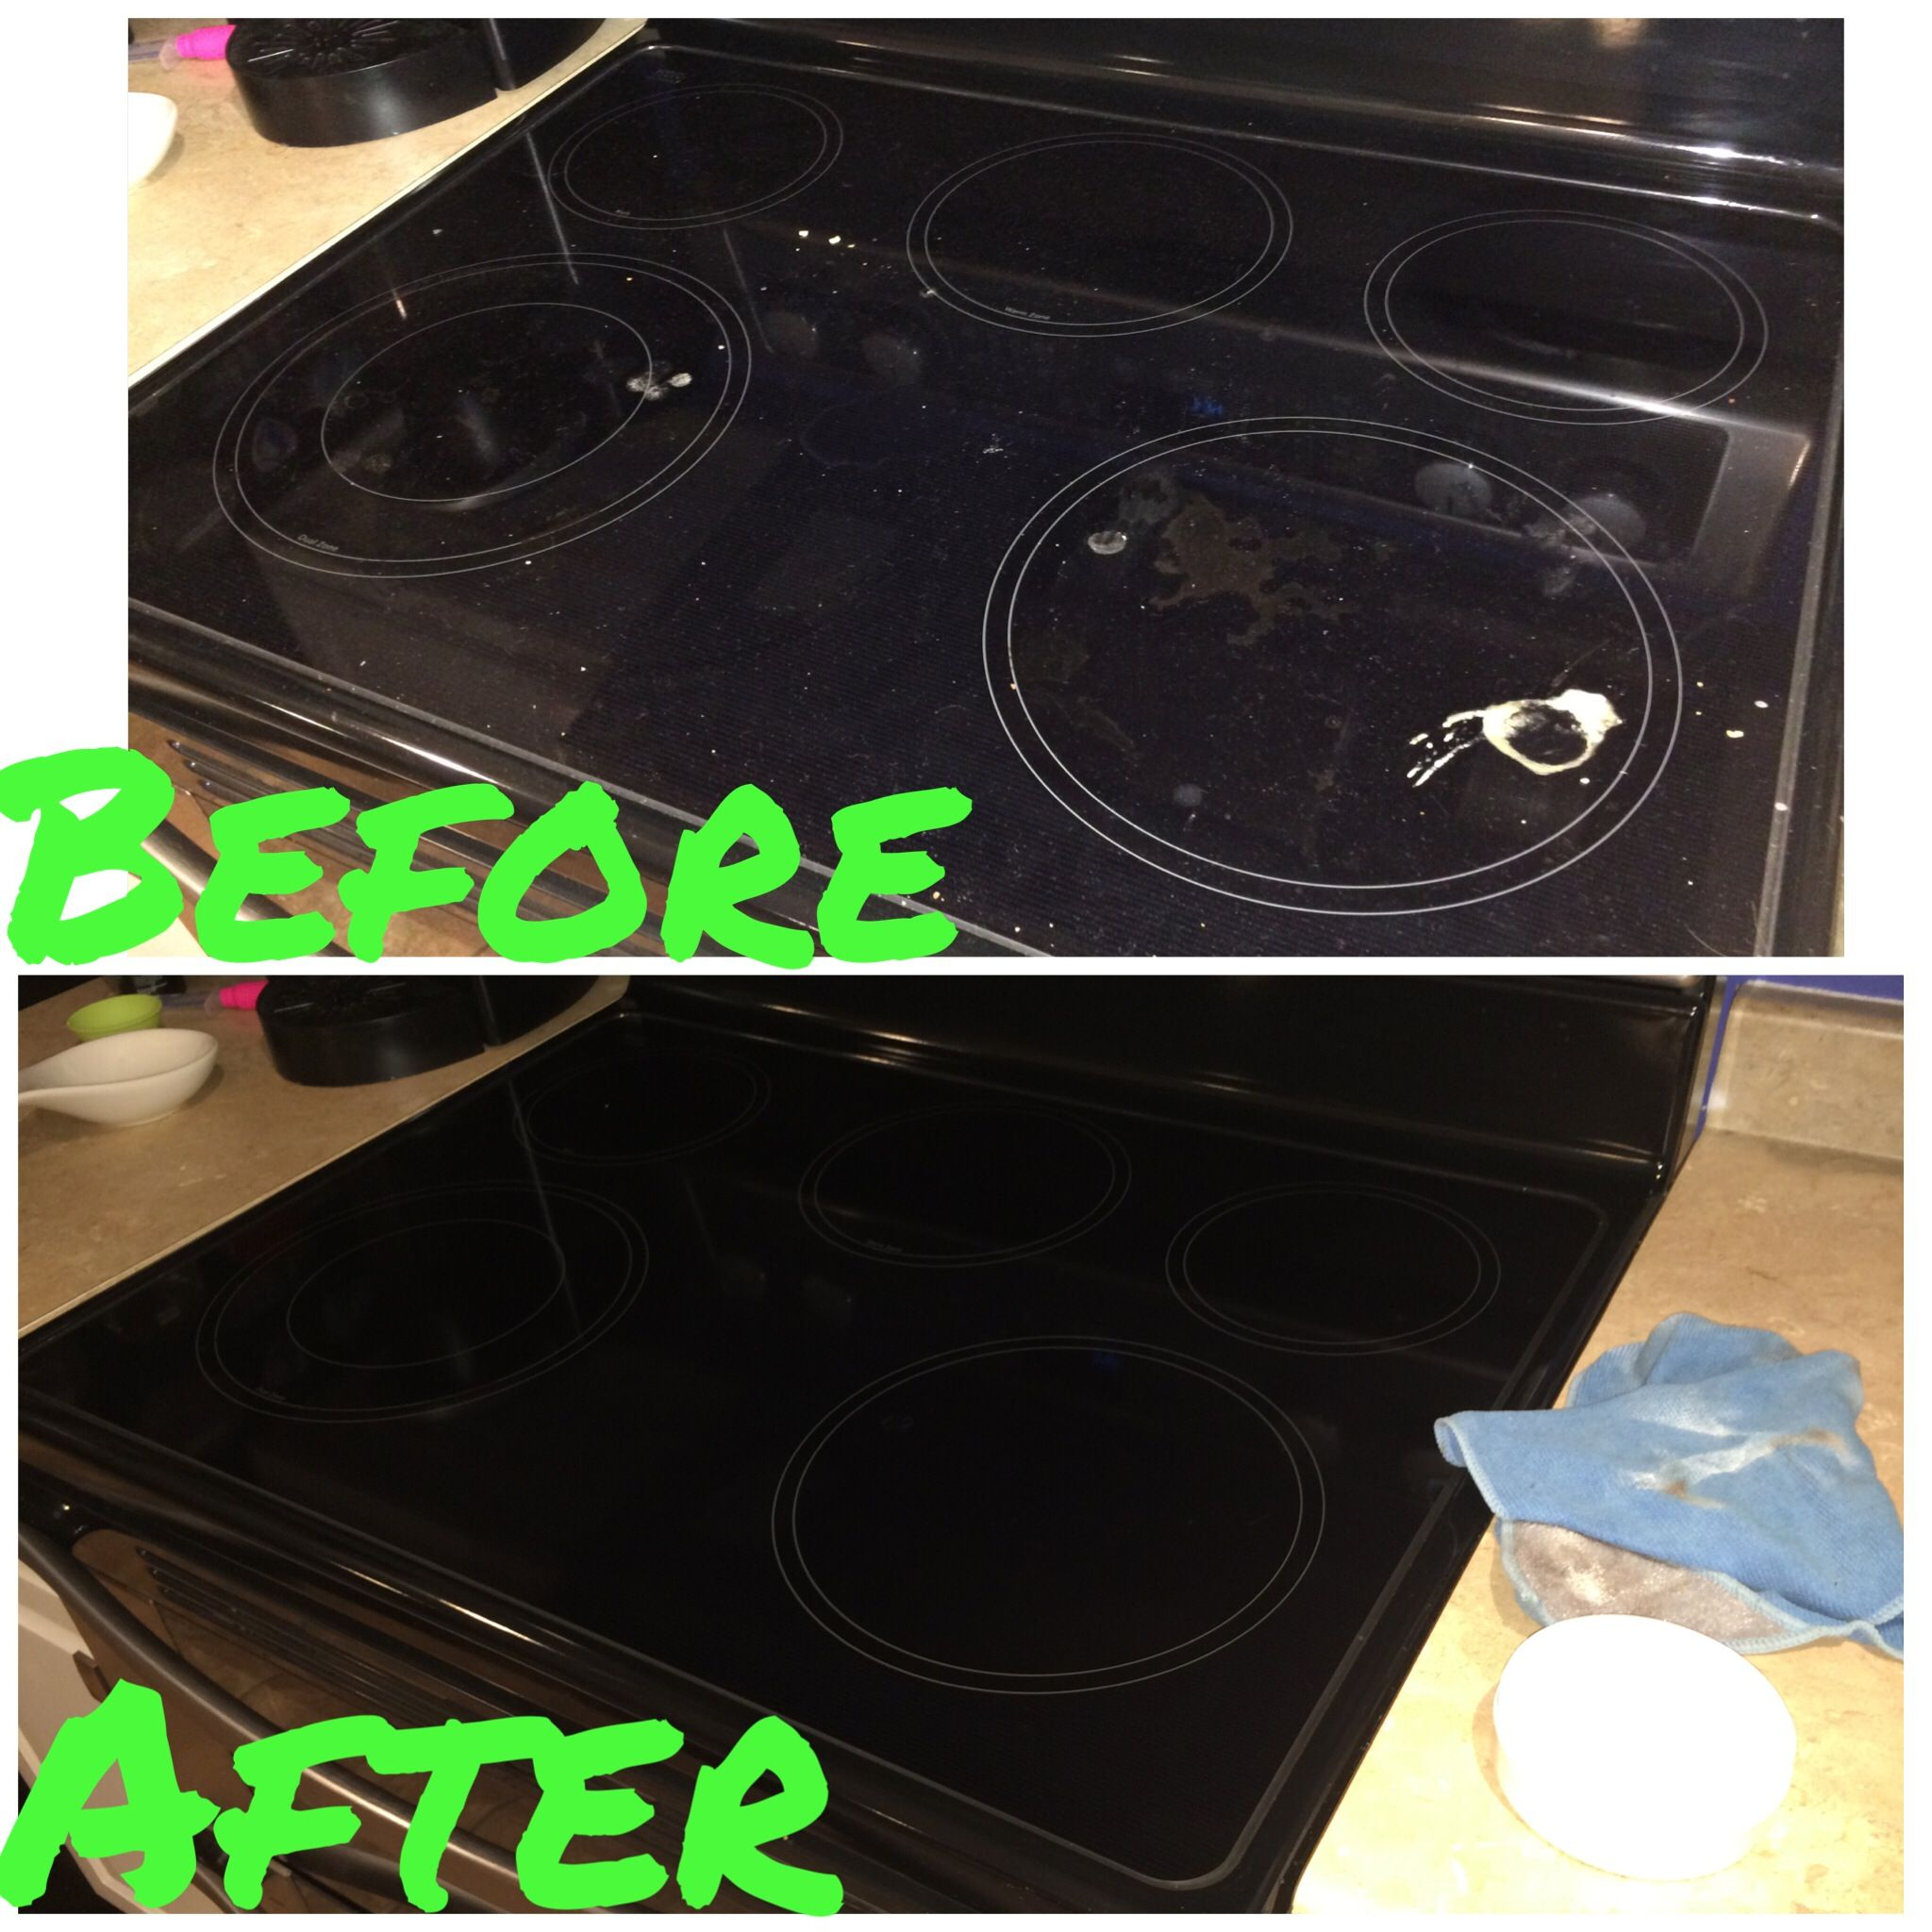 cleaned glass stove top in less than 2 minutes with Norwex scrubby ...